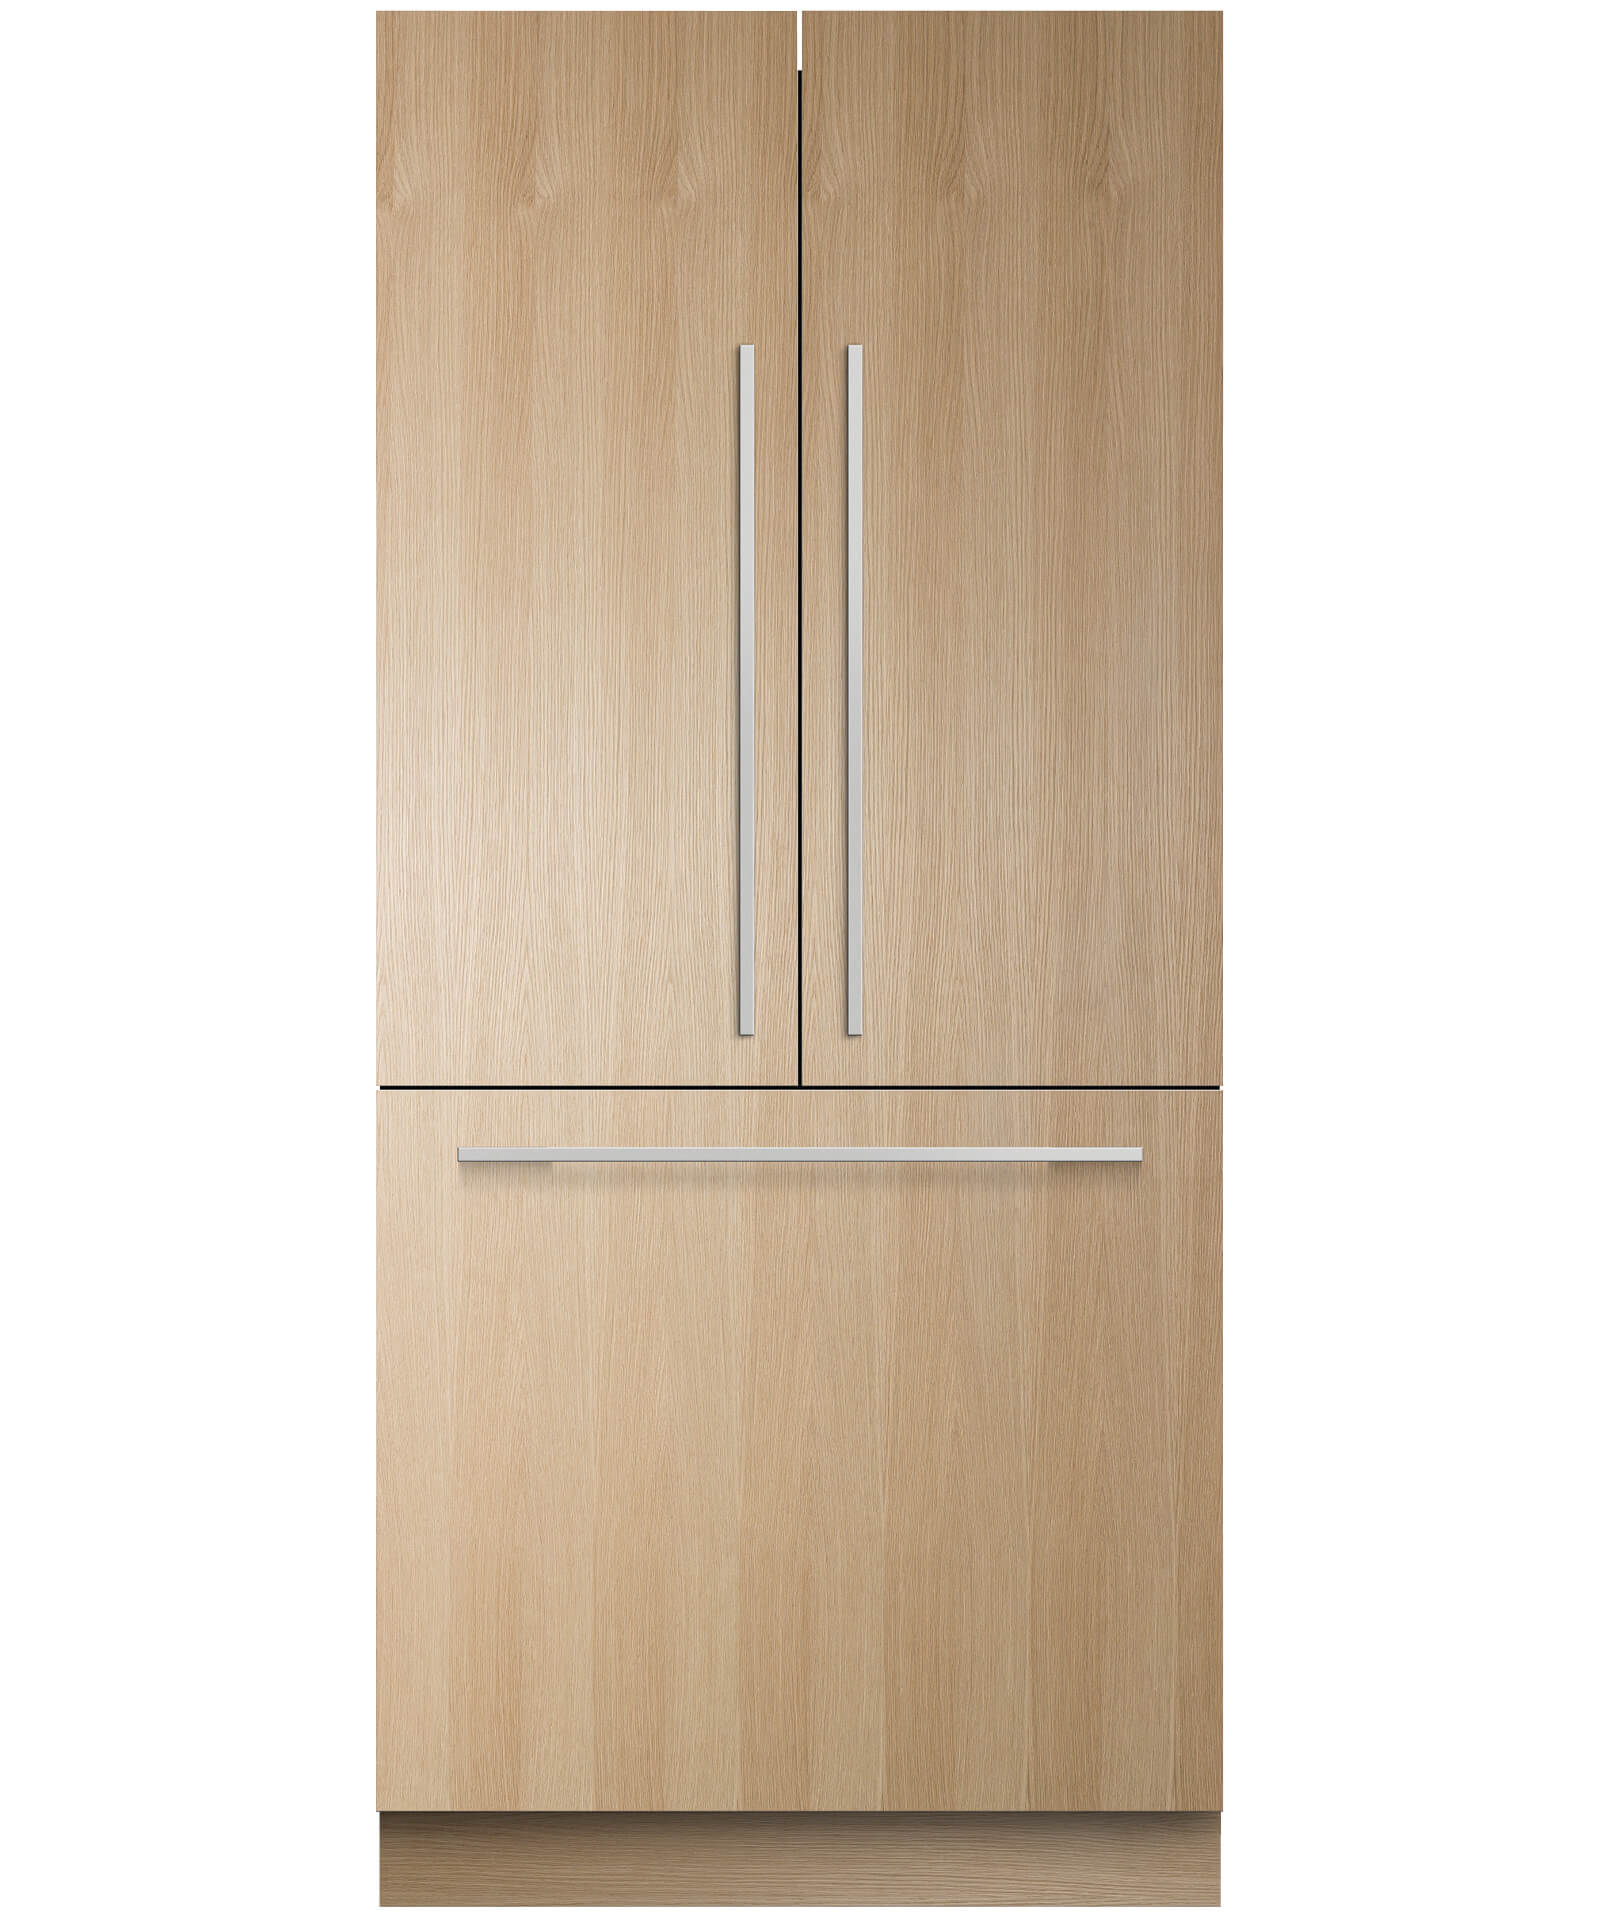 "RS36A80J1_N - ActiveSmart™ Refrigerator 36"" French Door Integrated with ice – 80""/84"" Tall - 25074"